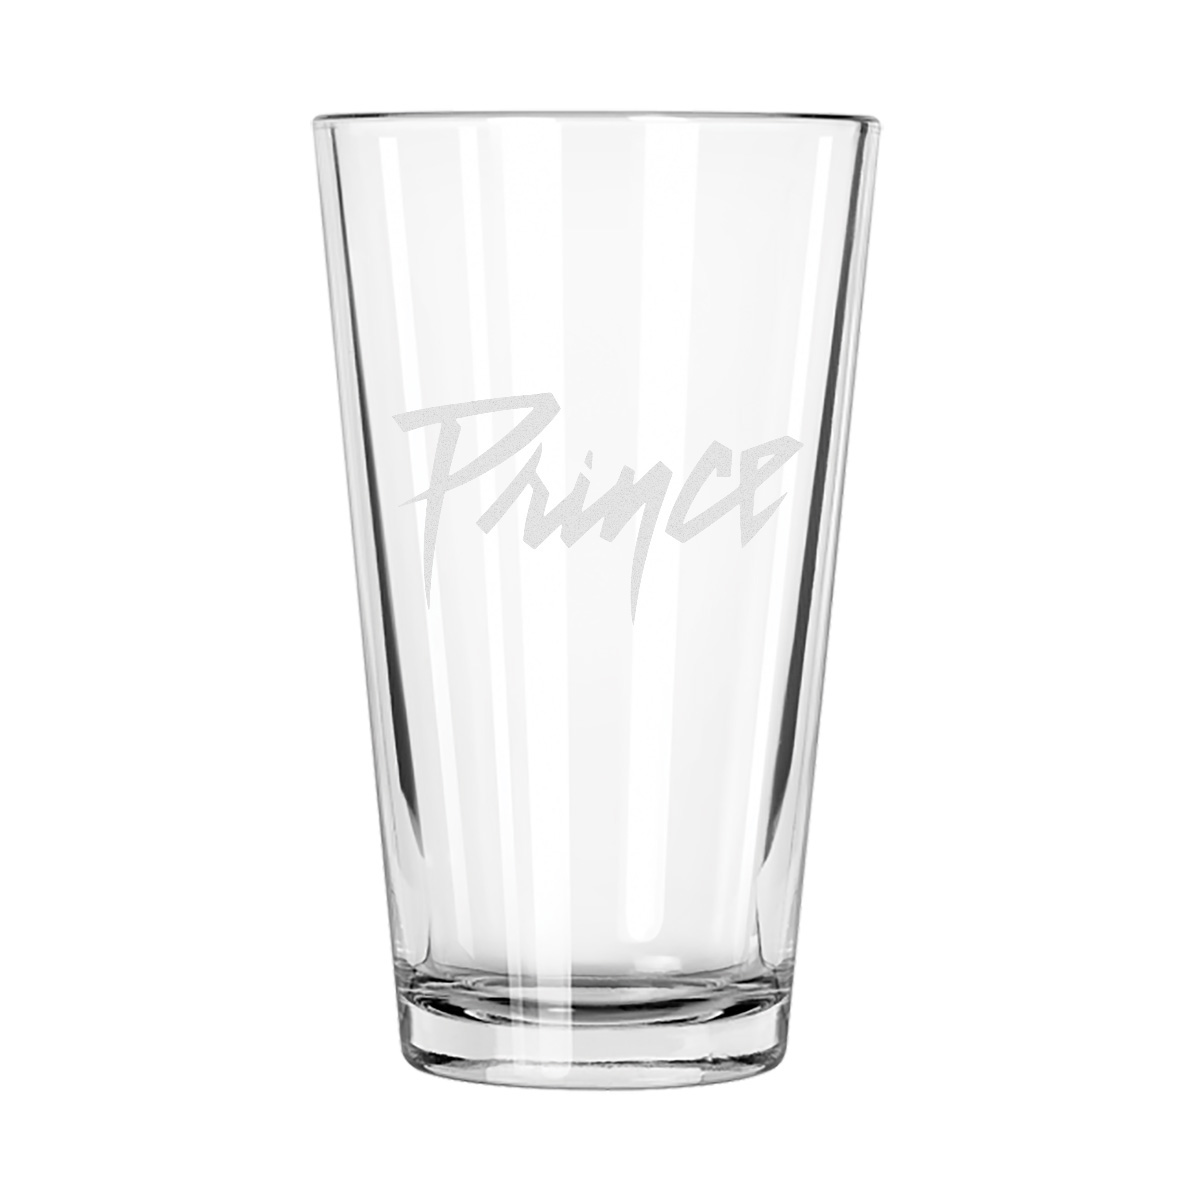 Etched Pint Glass 4-Piece Set